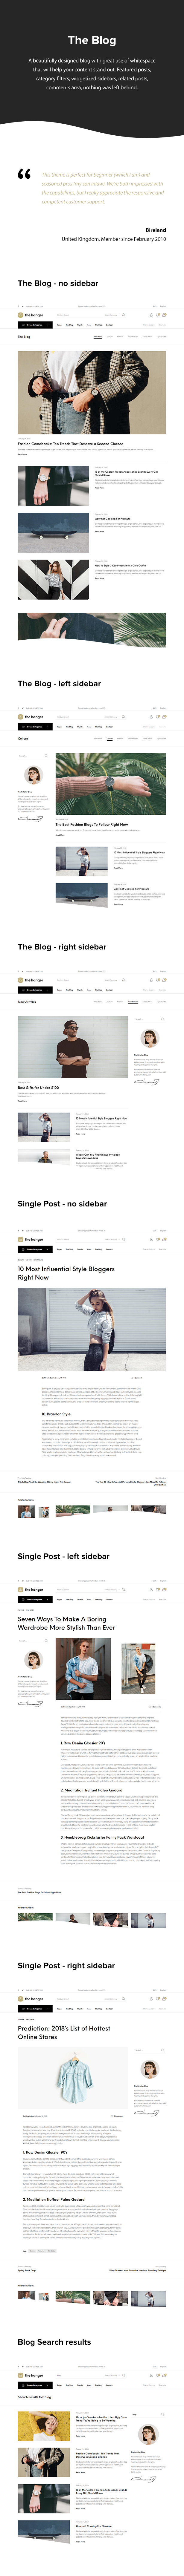 The Hanger - Modern Classic WooCommerce Theme - 6